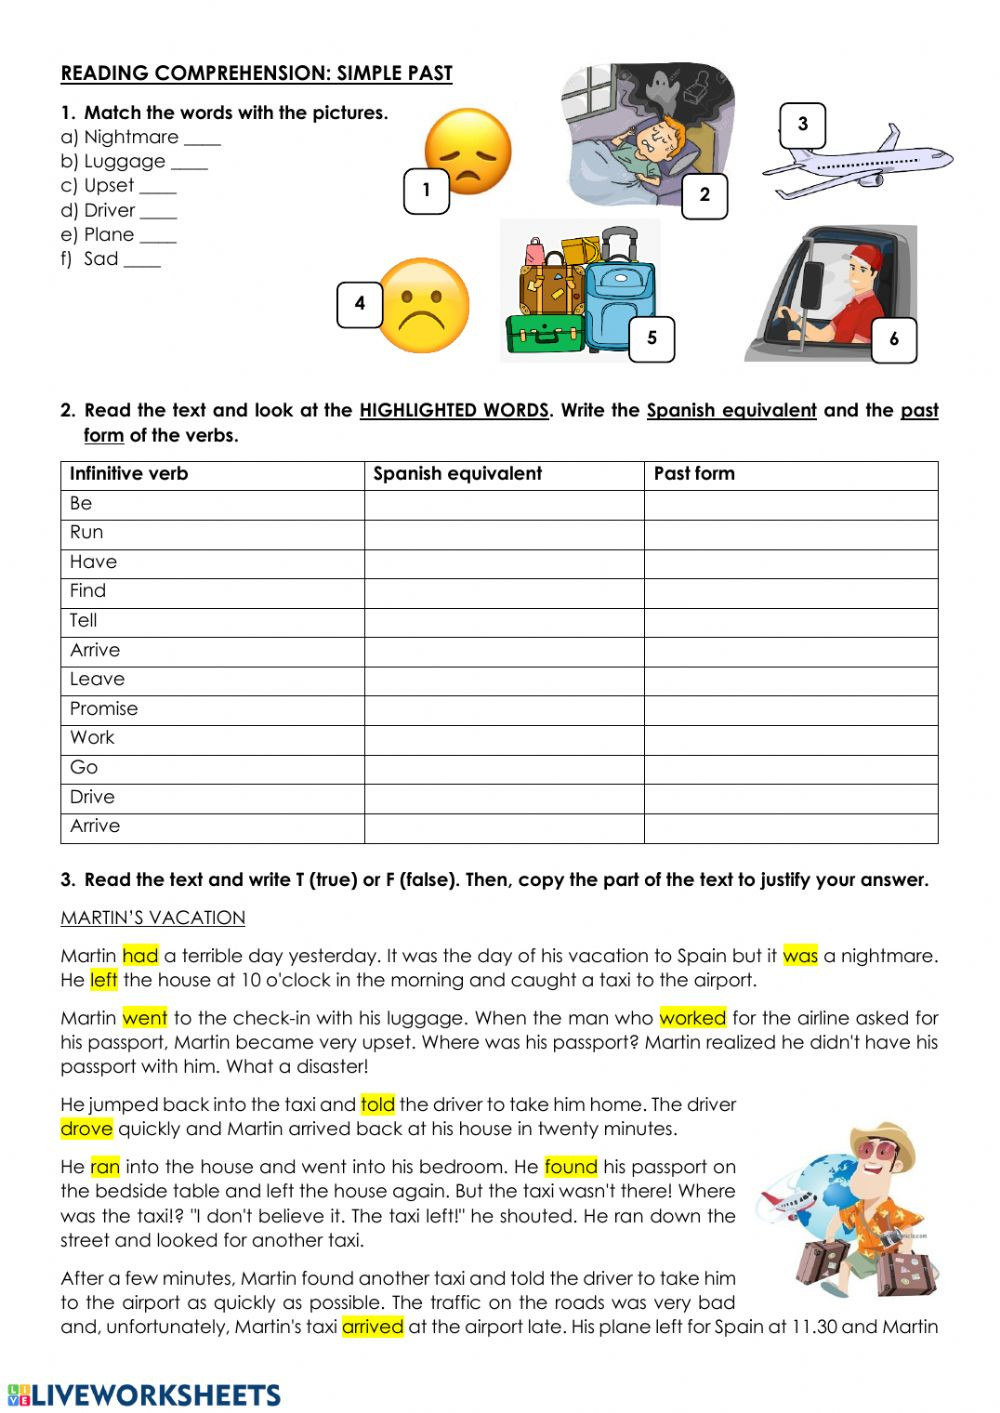 Spanish Reading Comprehension Worksheets Reading Prehension Past Simple Interactive Worksheet